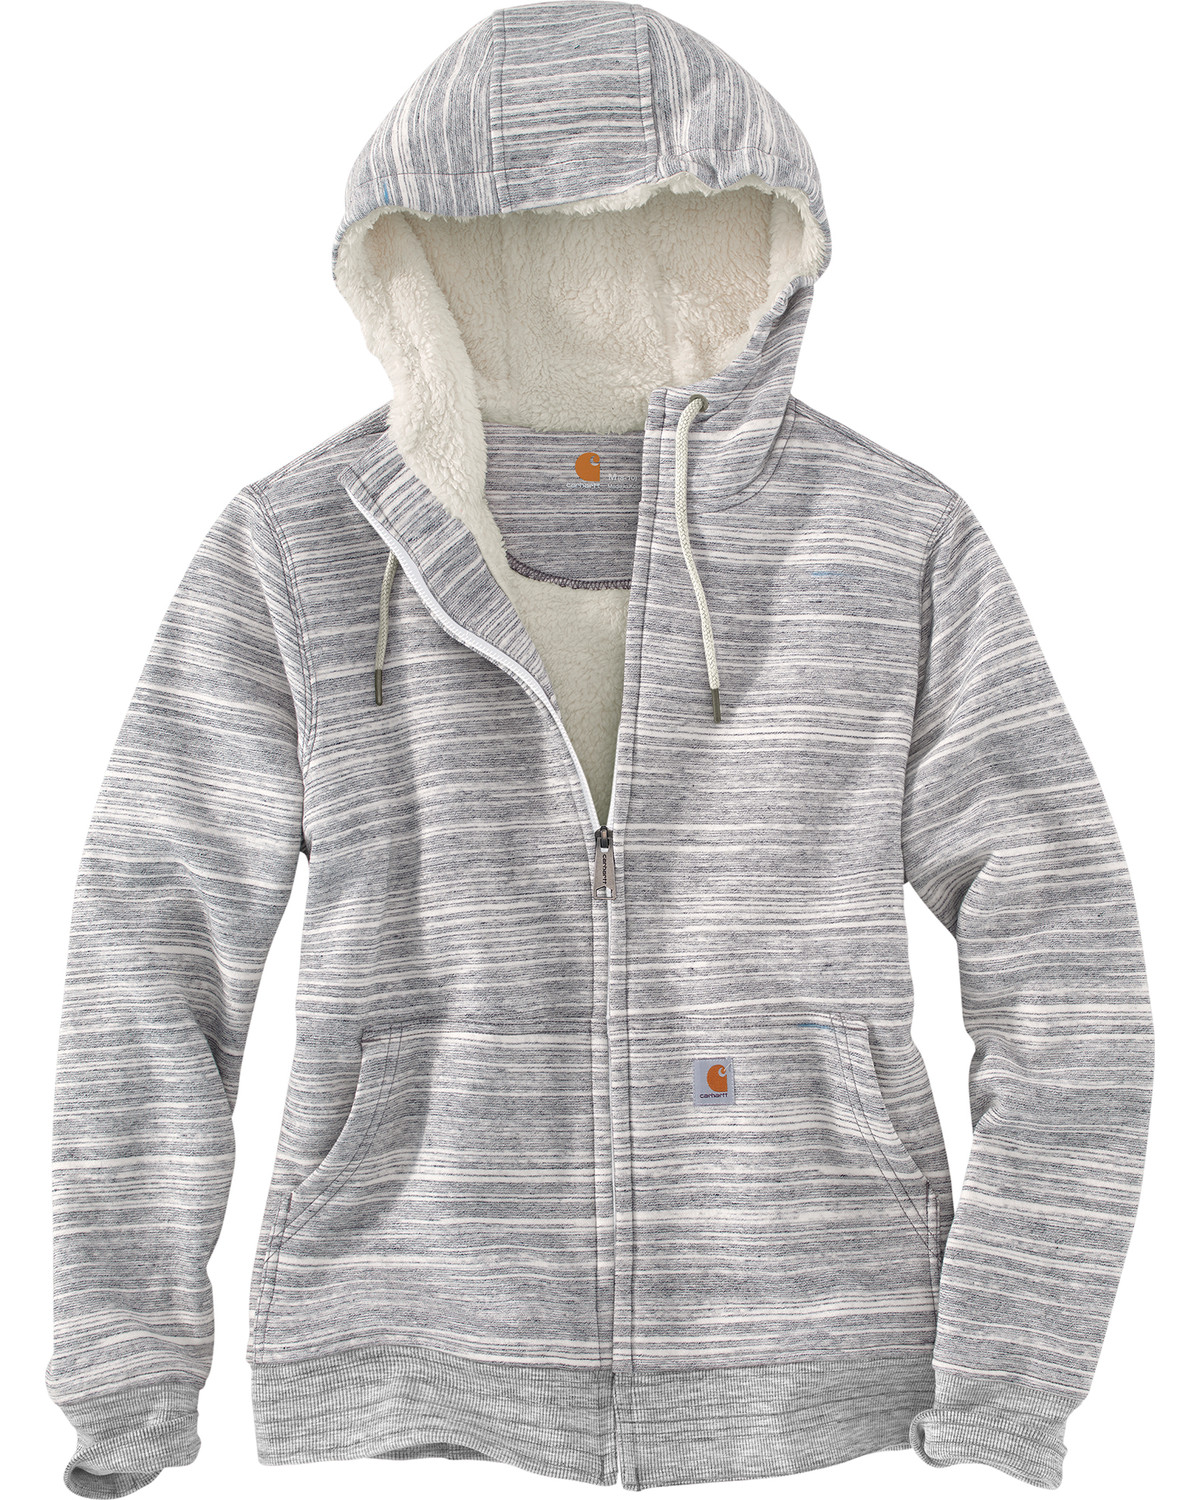 Greylady S Hearth February 2014: Carhartt Women's Grey Clarksburg Sherpa Lined Hoodie